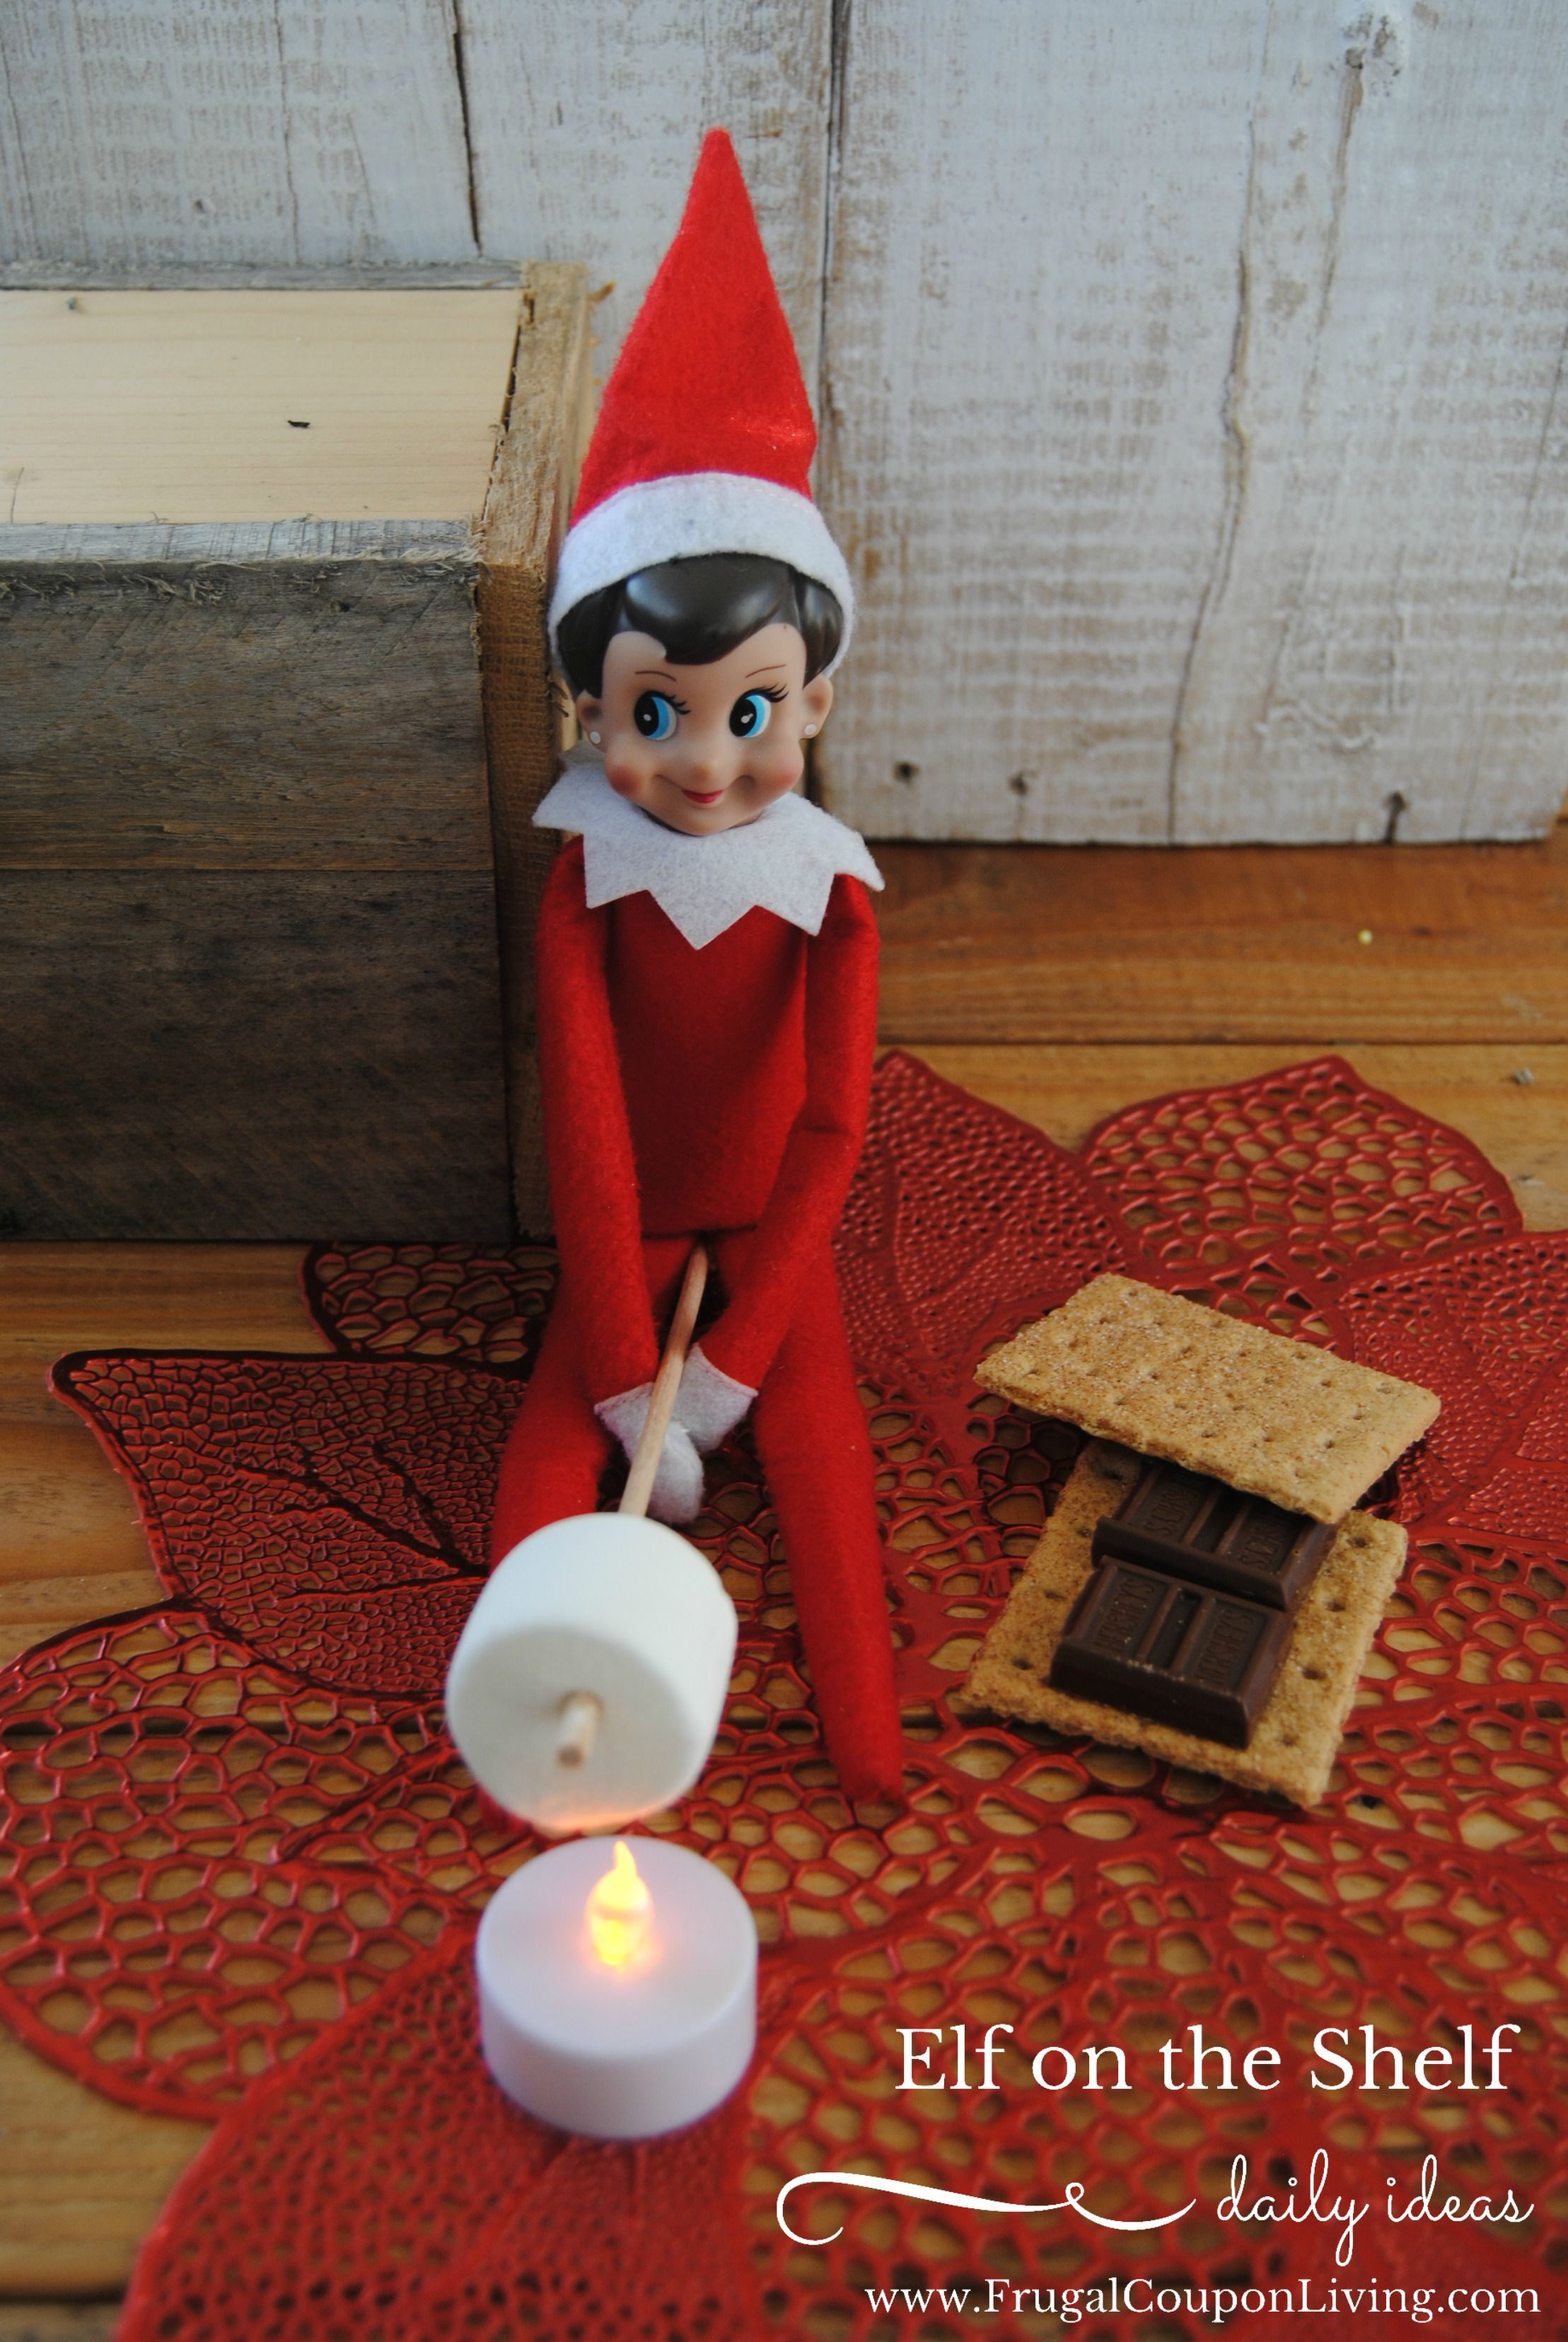 Find Elf On A Shelf in Buy & Sell | Buy and sell items locally in Ontario. Find art, books, cameras 📷, suits, fashion, prom dresses, a PC or TV, furniture and more on Kijiji, Canada's #1 Local Classifieds.